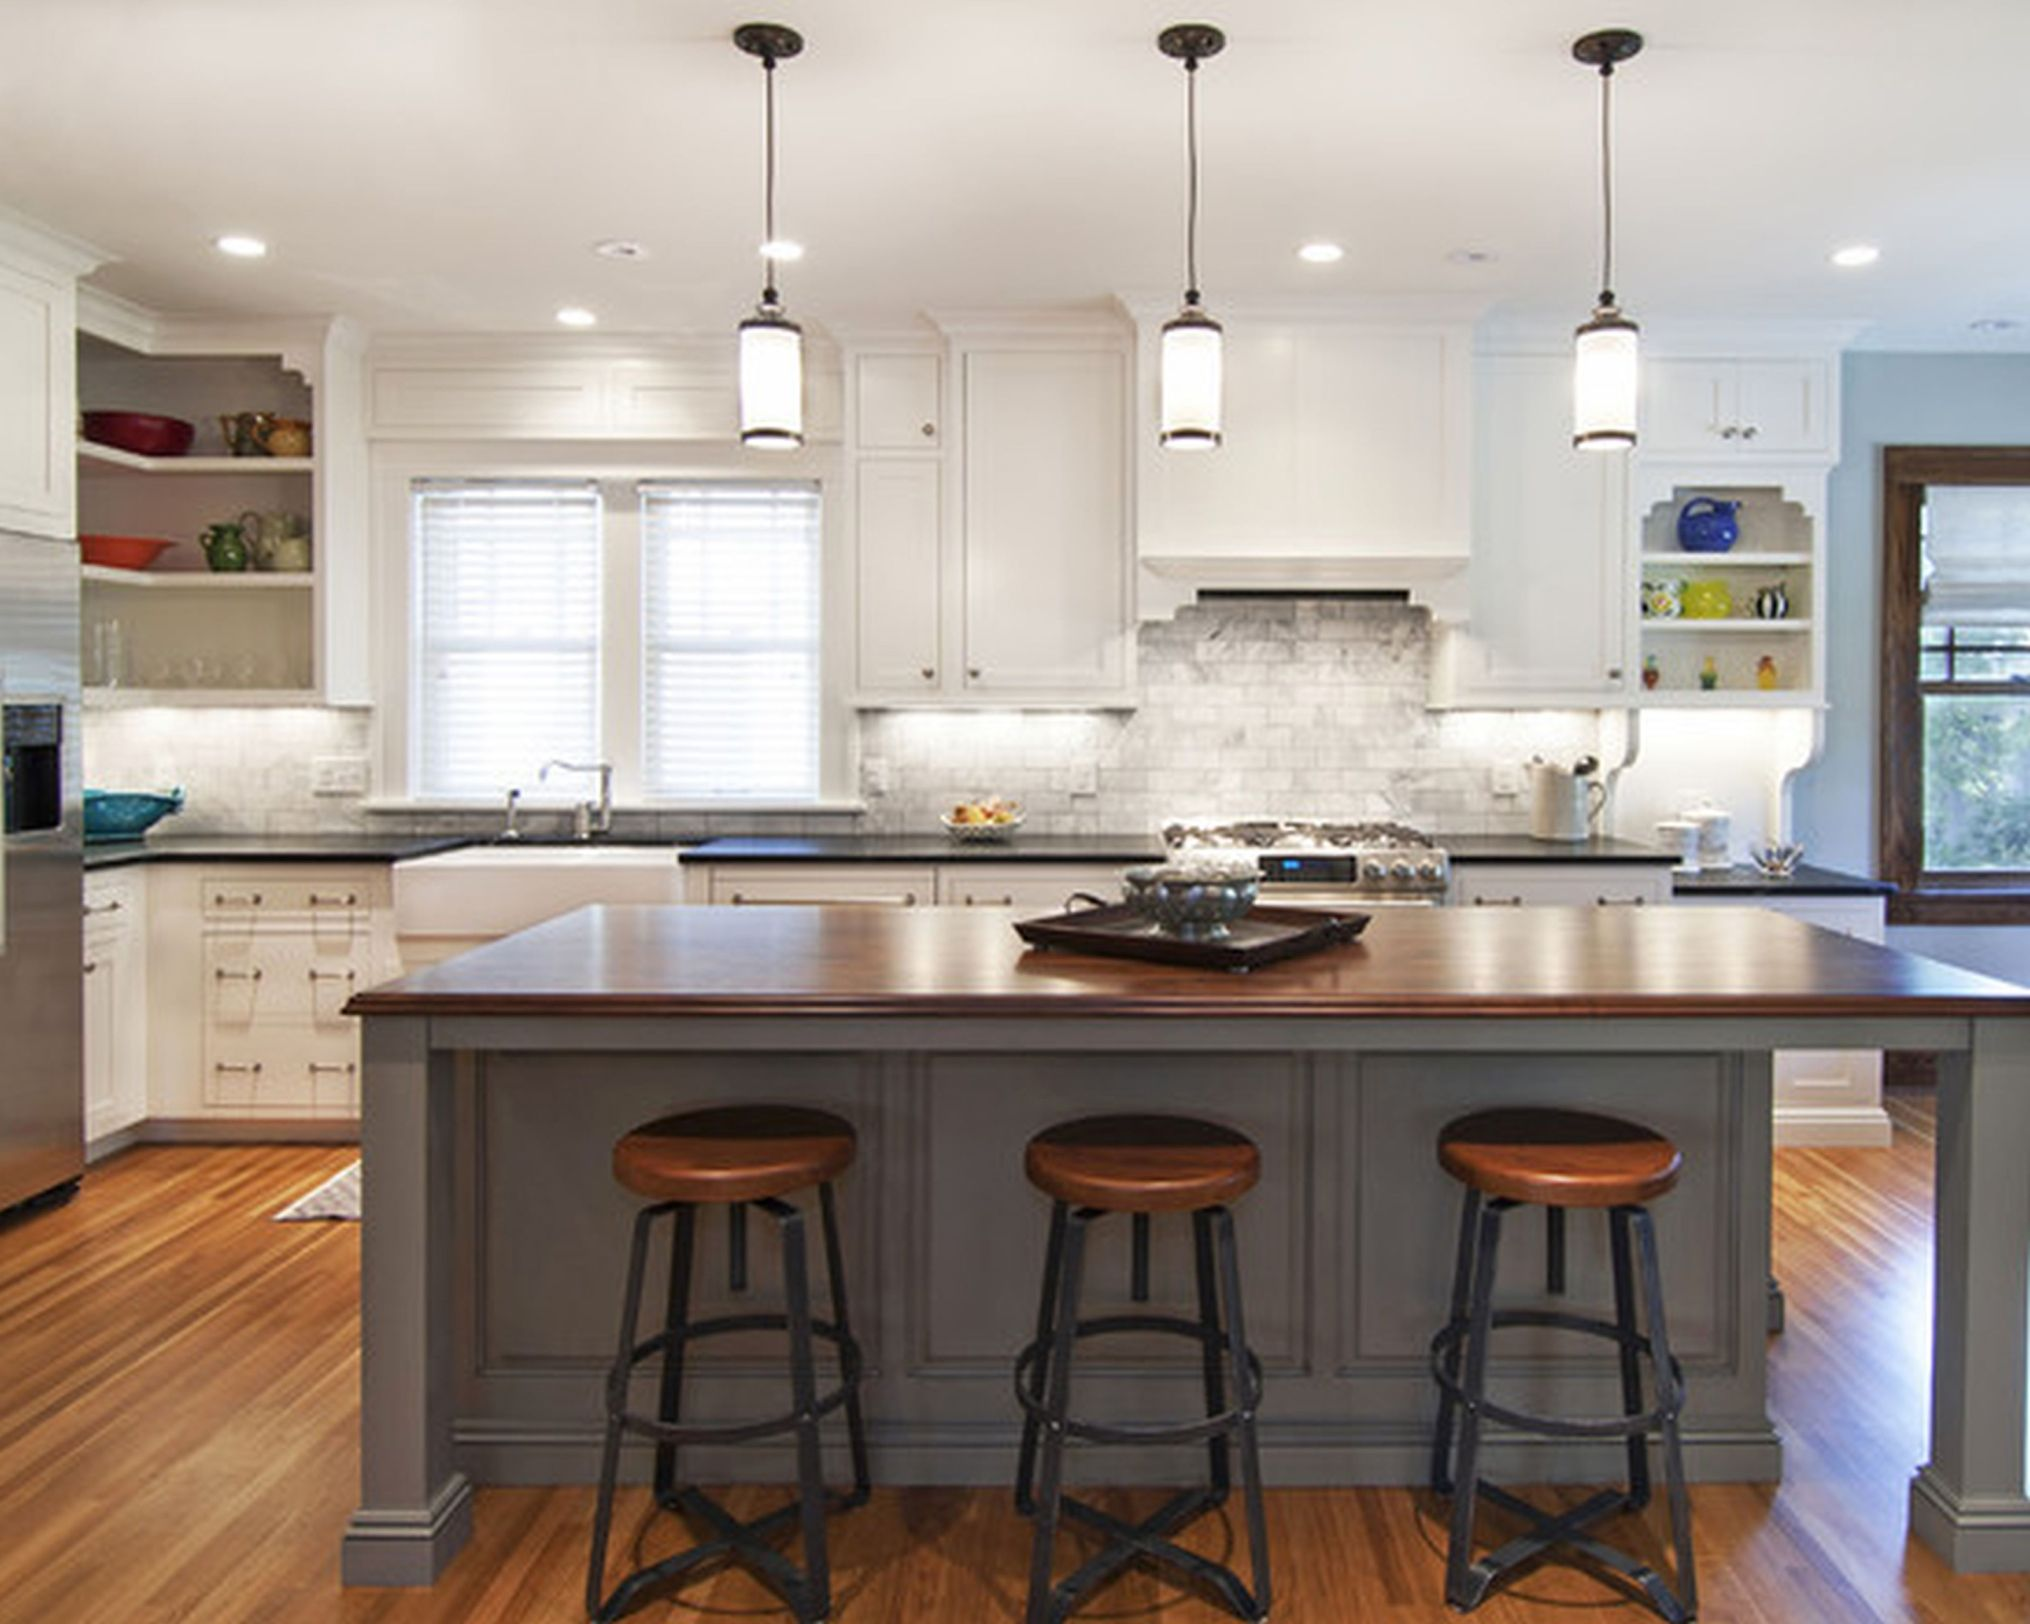 white-kitchen-cabinets-bay-window-pendant-lights-over-kitchen